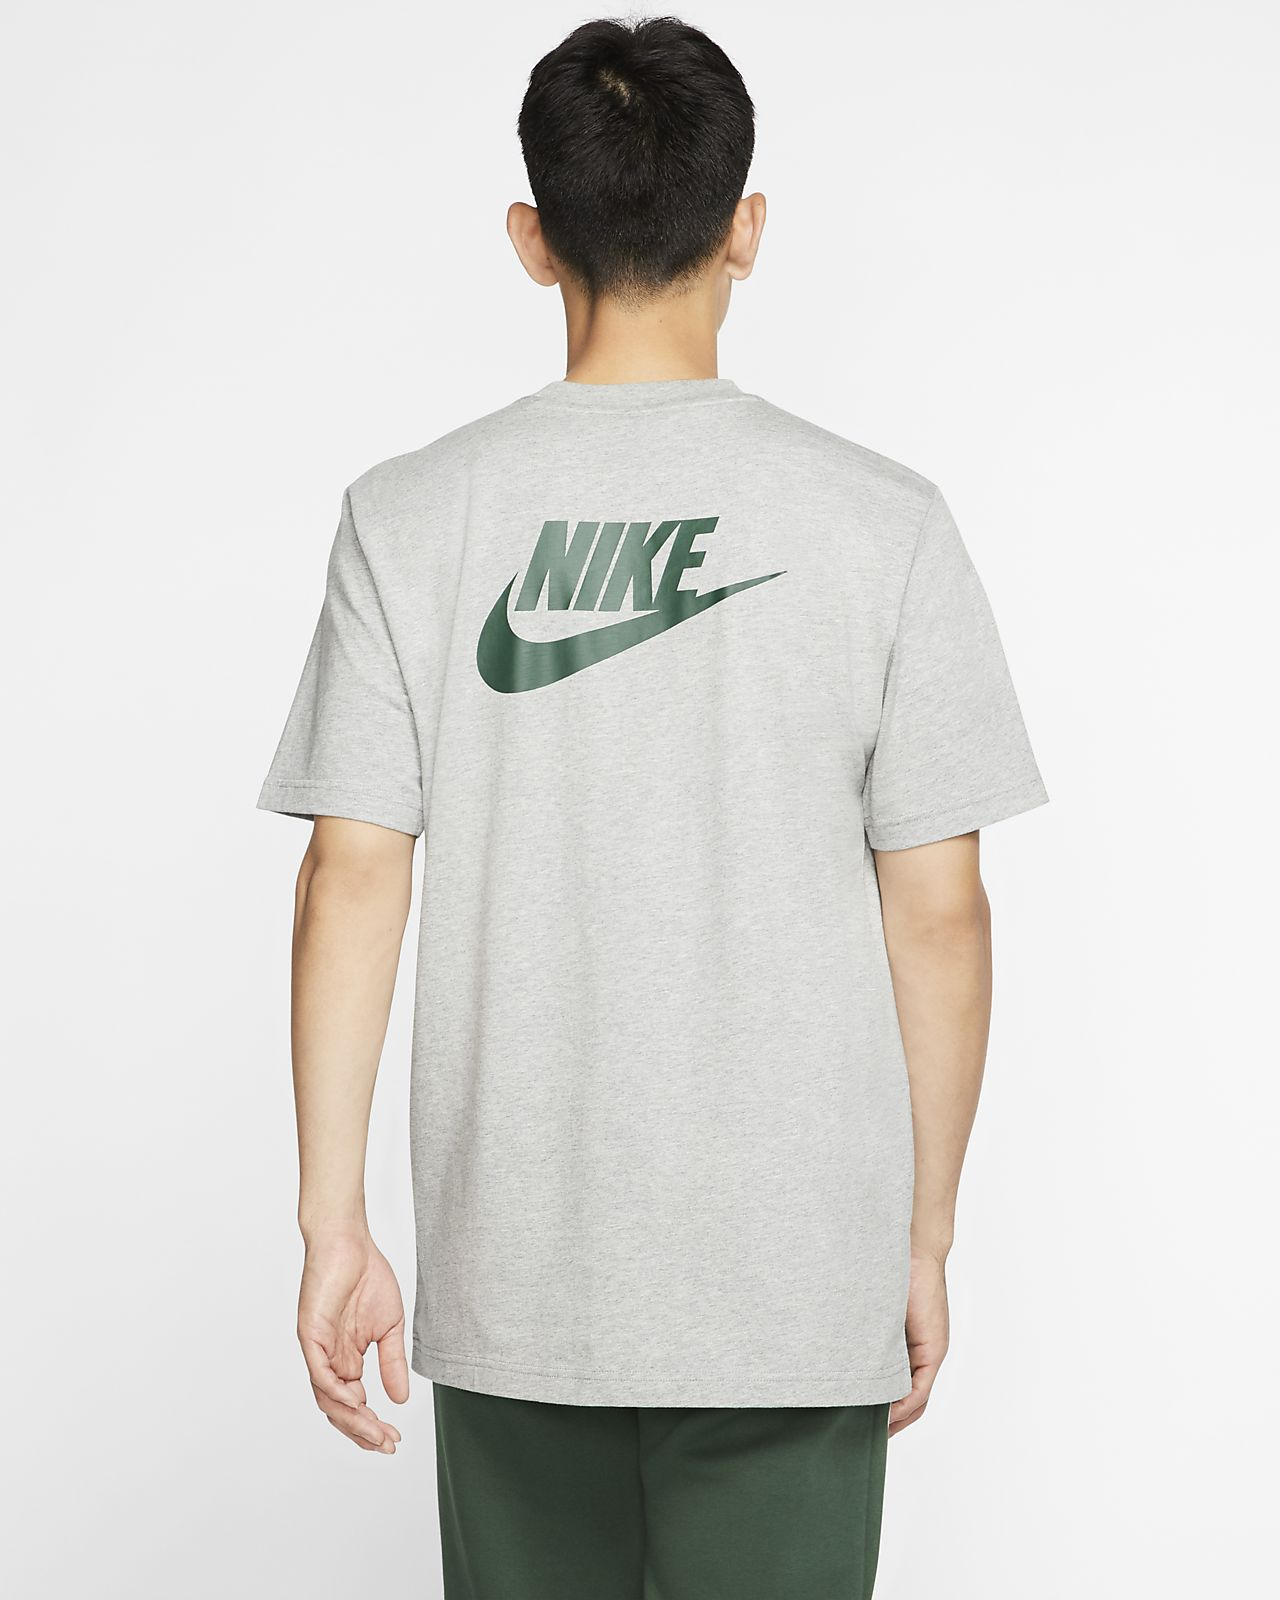 060fa3b027 Nike x Stranger Things Men's T-Shirt